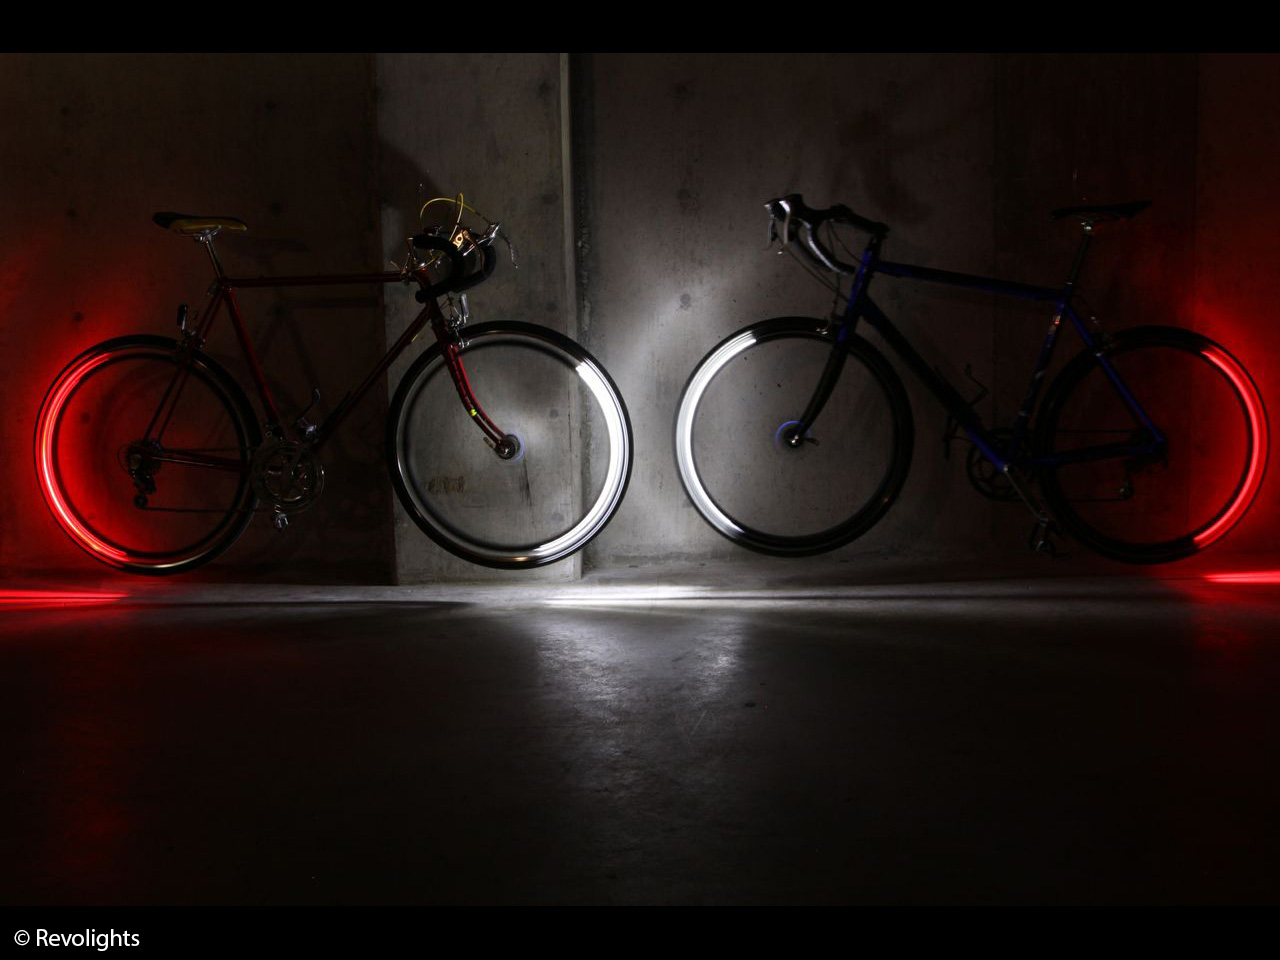 revolights fahrradlicht die skurrile innovation aus amerika. Black Bedroom Furniture Sets. Home Design Ideas